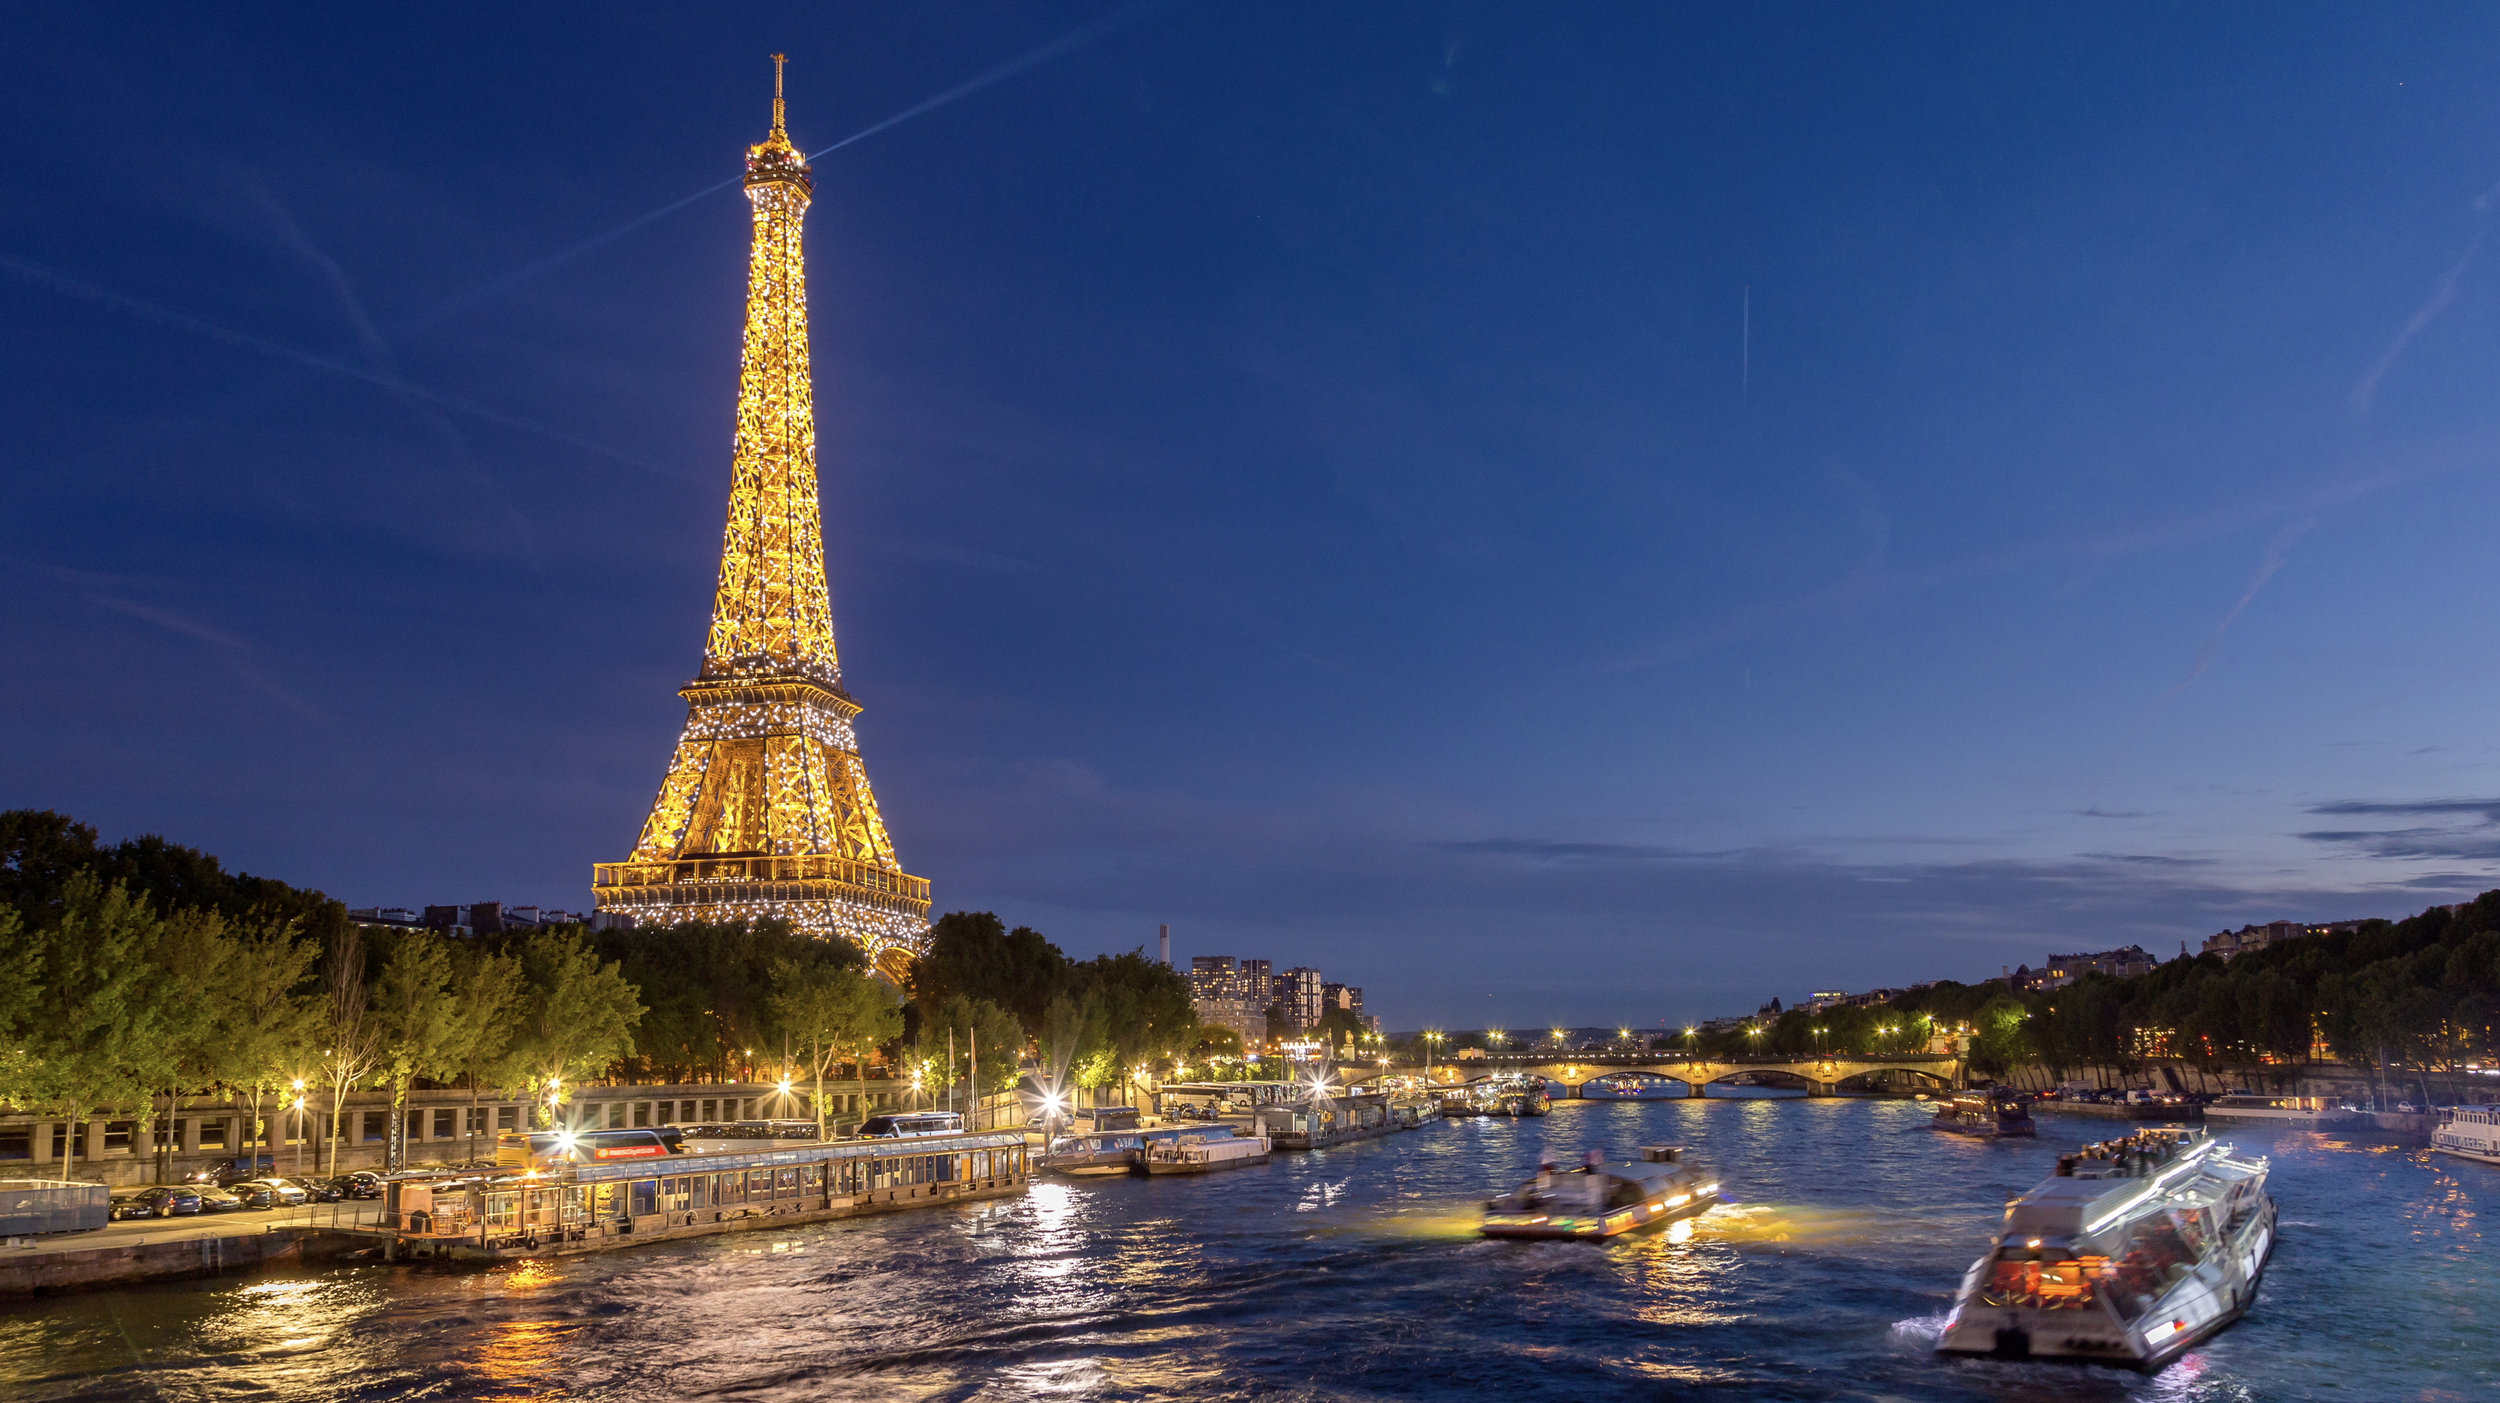 Hd Paris Eiffel Tower And Seine River At Dusk Emeric S Timelapse